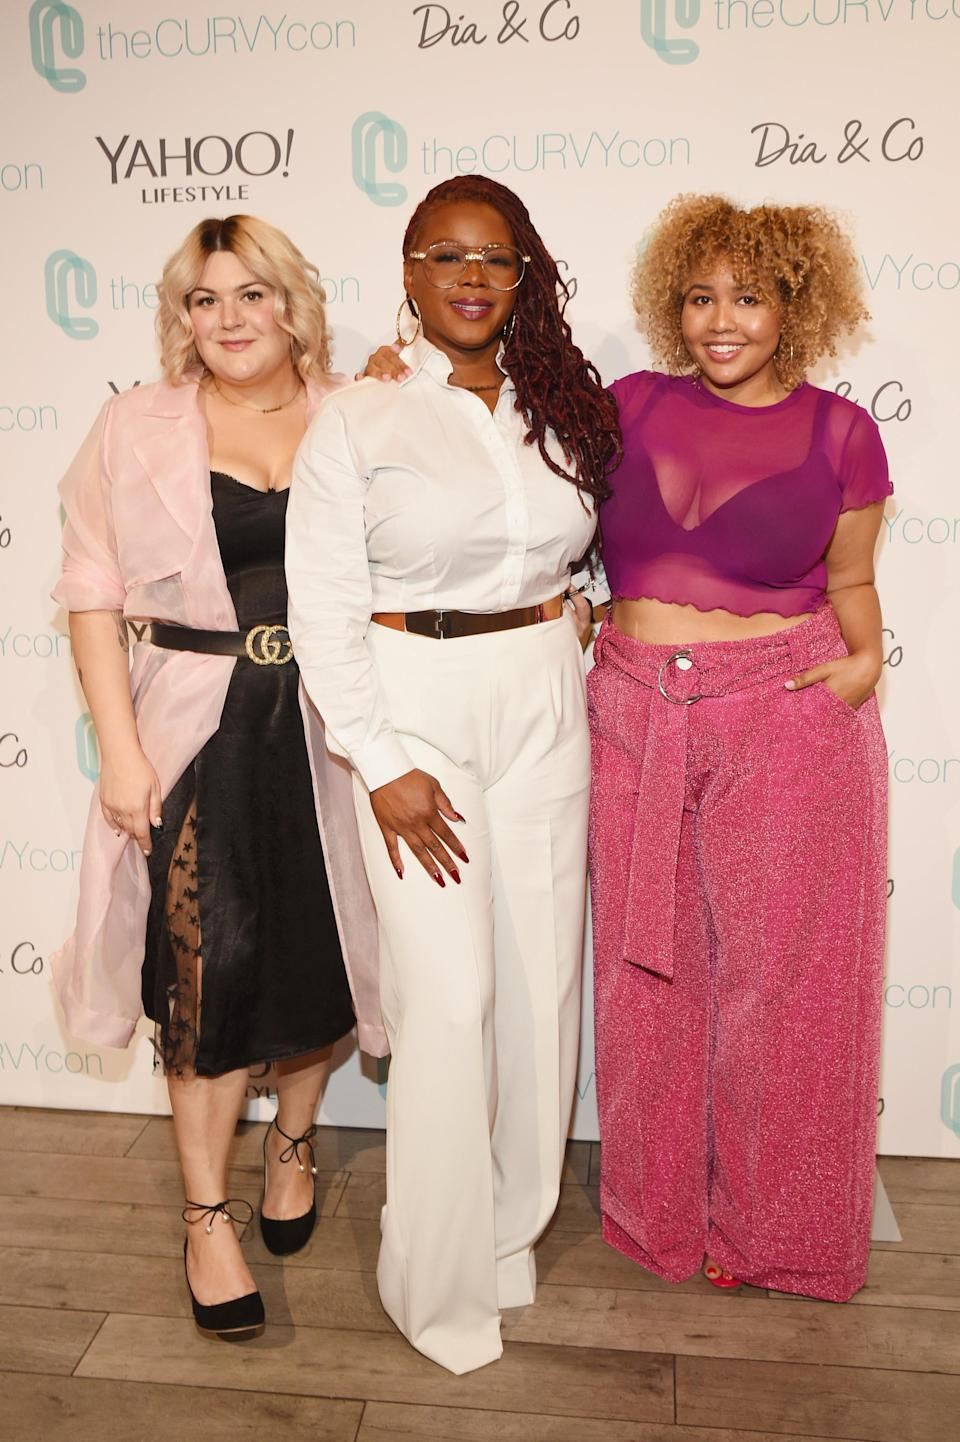 Nicolette Mason, Claire Sulmers, and Gabi Gregg at the 2017 theCurvyCon in New York City. (Photo: Bryan Bedder/Getty Images for Curvy Events, LLC)